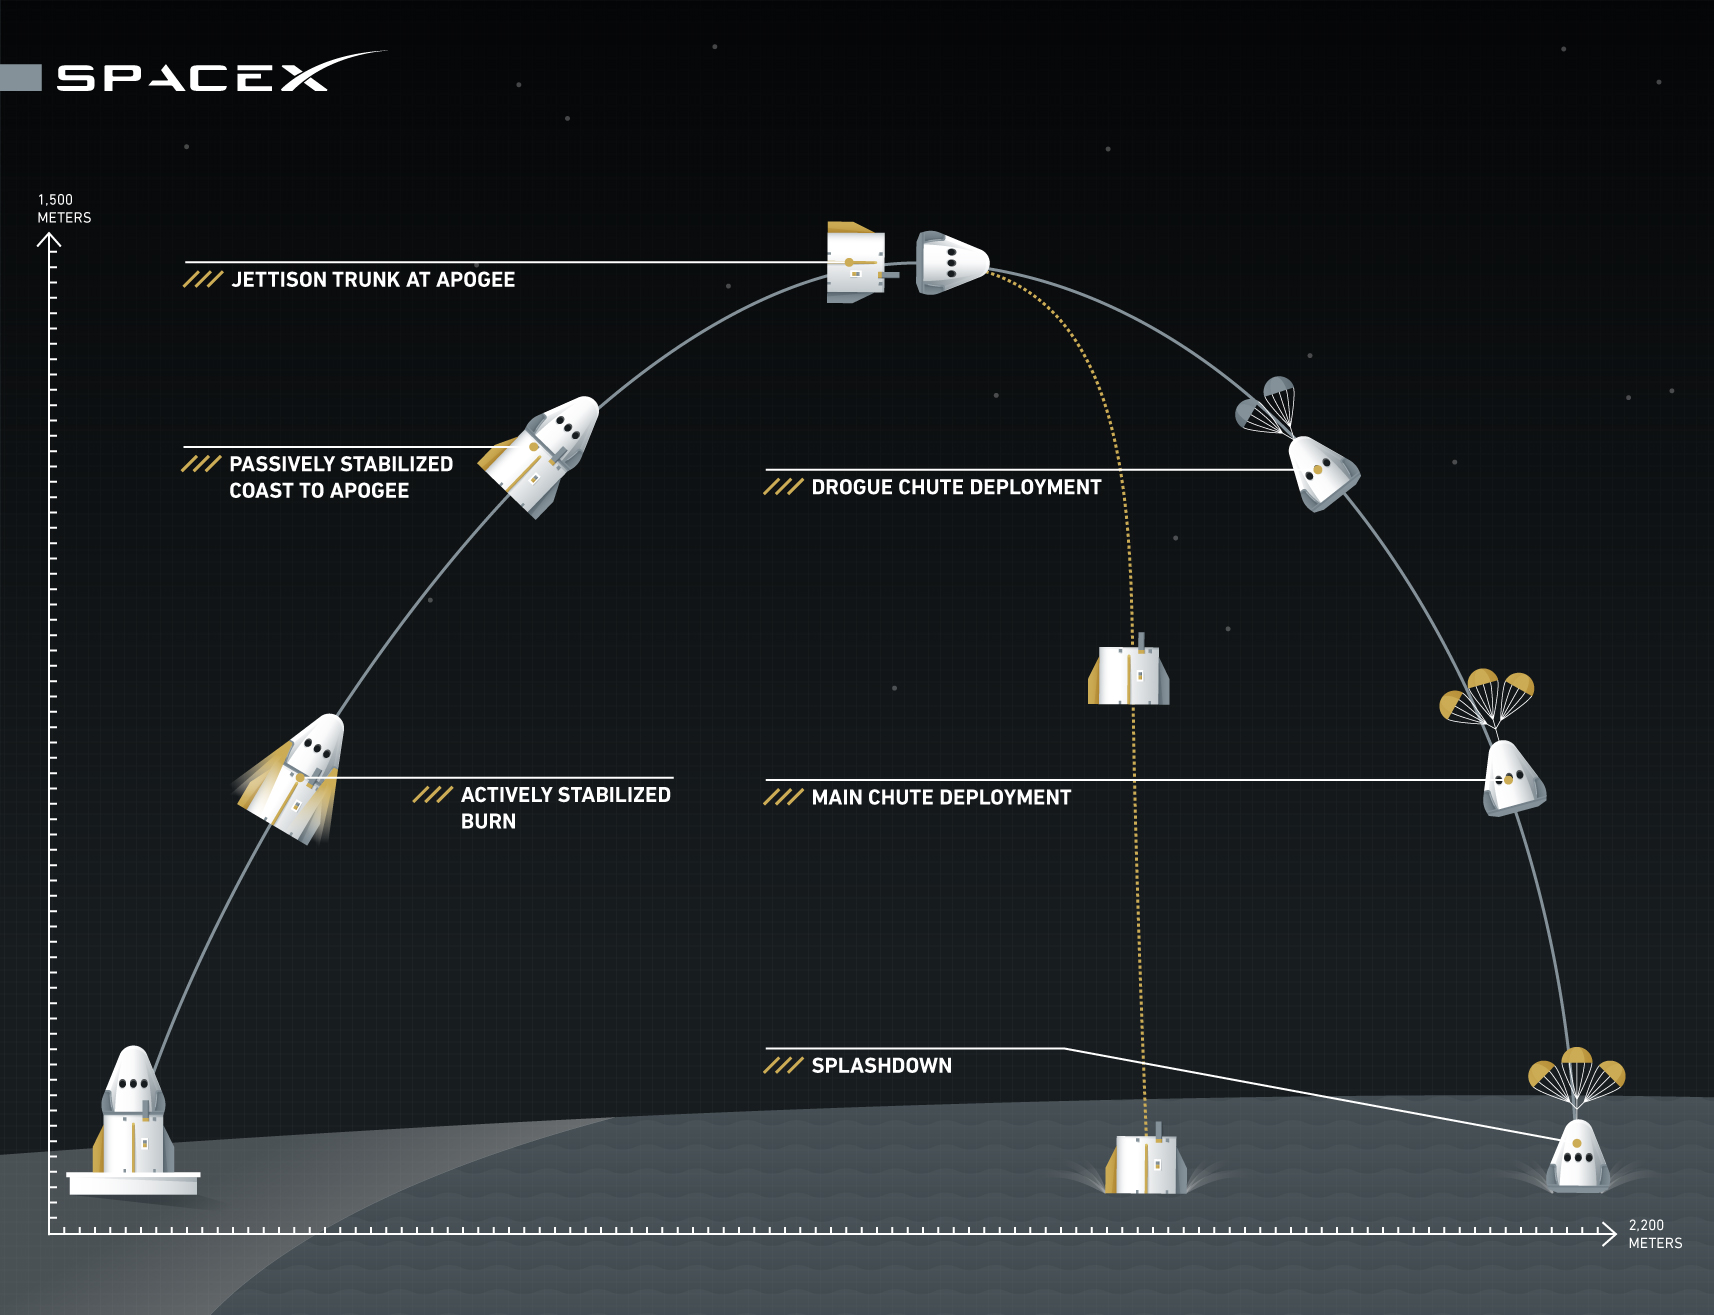 A graphic showing the (expected) sequence of events during the Crew Dragon pad abort test.